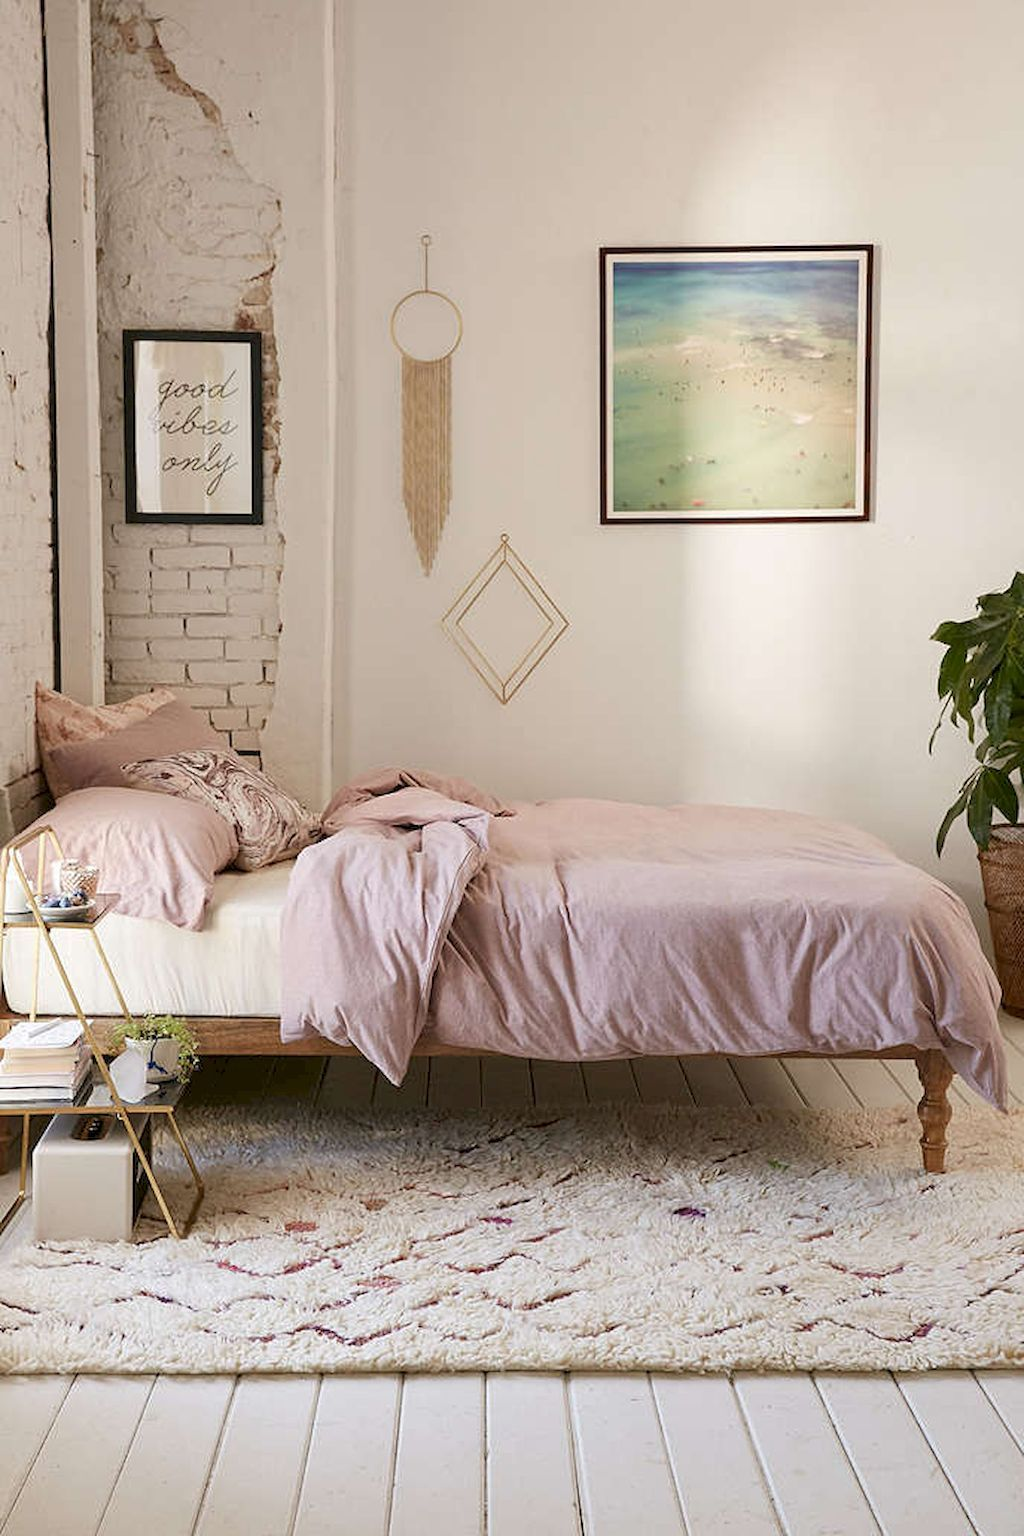 Bedroom Design On A Budget 74 Website Photo Gallery Examples